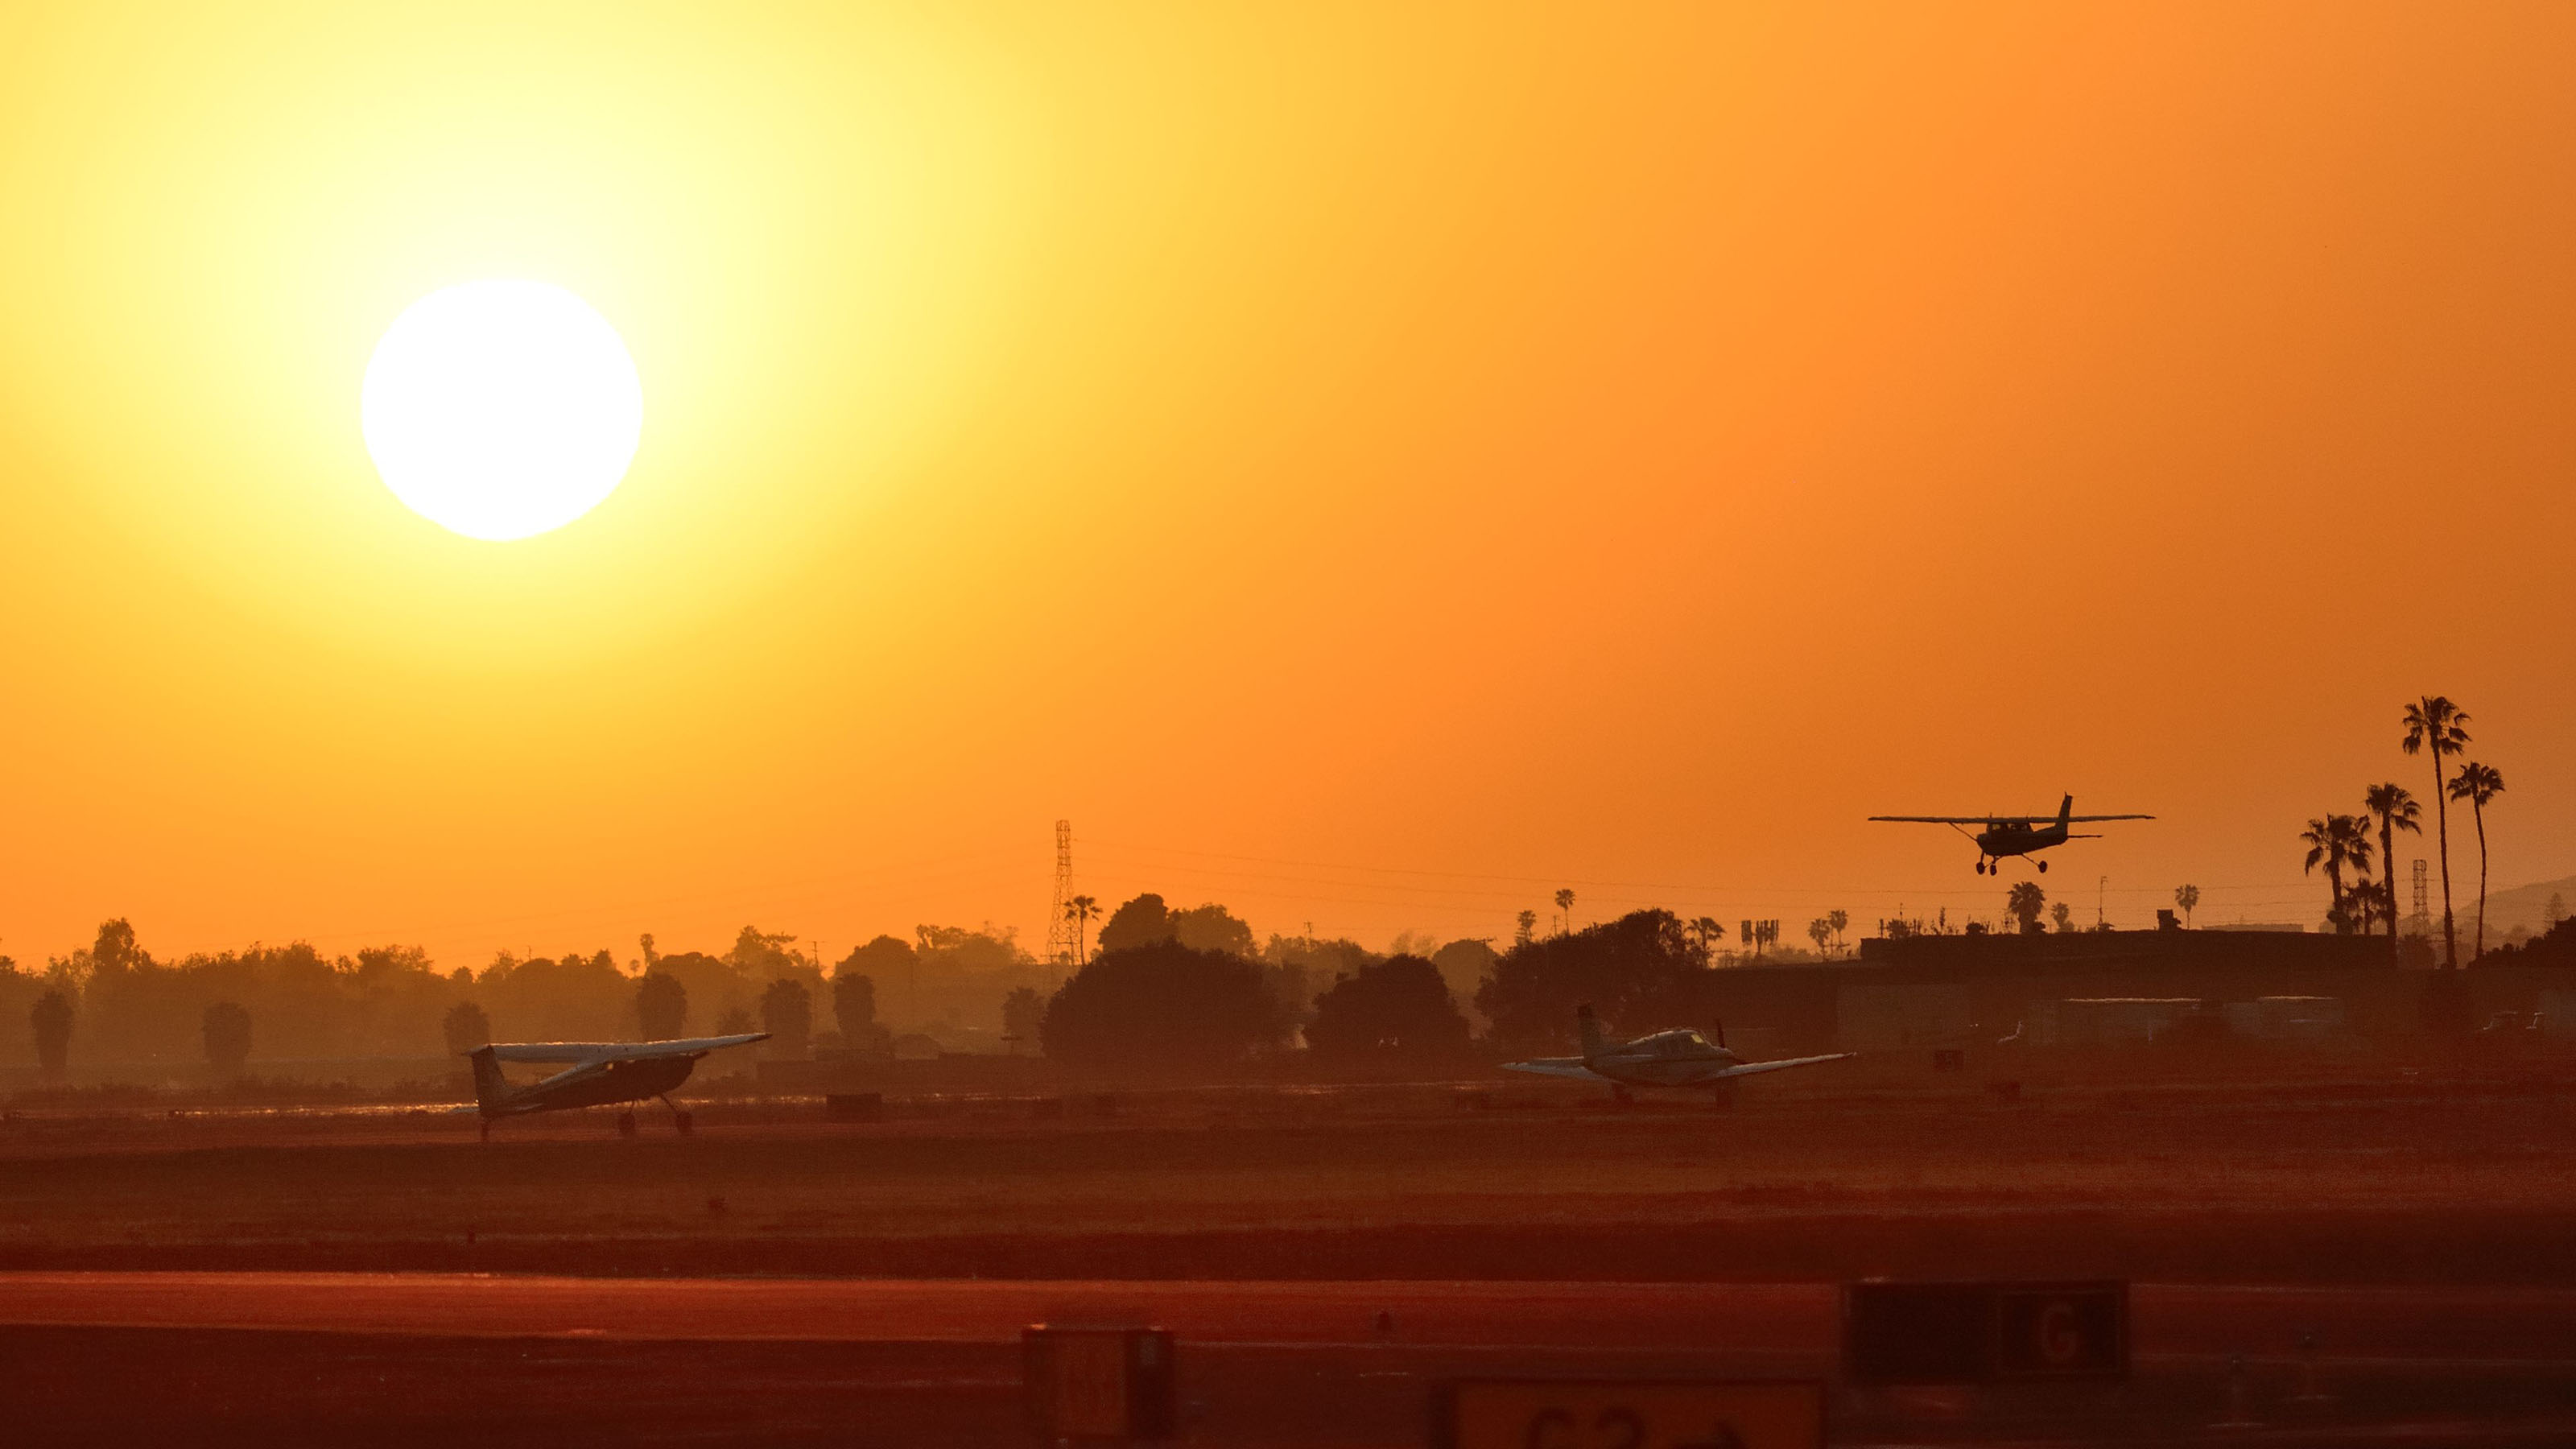 As the sun sets at Camarillo Airport on Friday night, a Cessna lands while two airplanes wait to depart. Photo by Mike Collins.